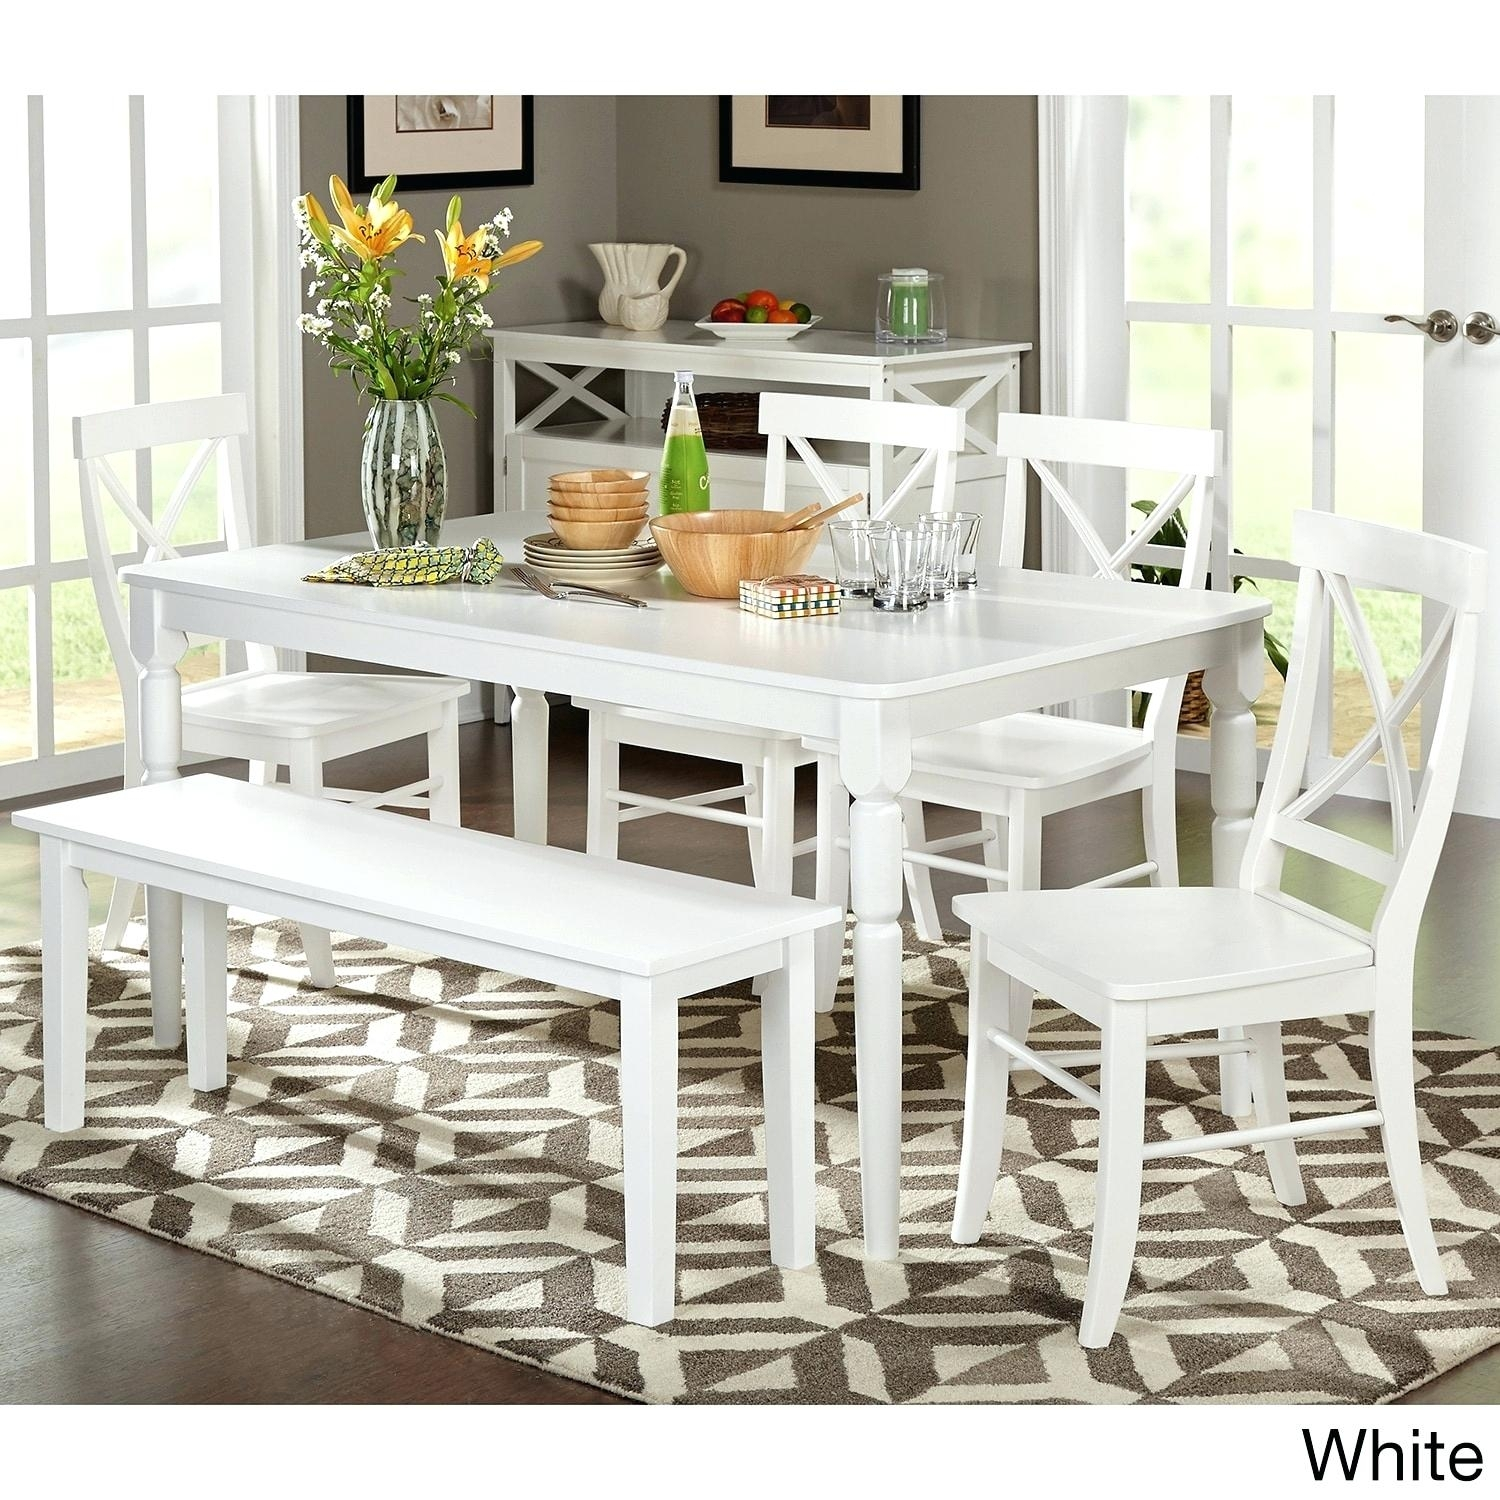 Imágenes De White Wooden Dining Room Table And Chairs Inside Most Recently Released Combs 5 Piece 48 Inch Extension Dining Sets With Pearson White Chairs (Image 13 of 20)